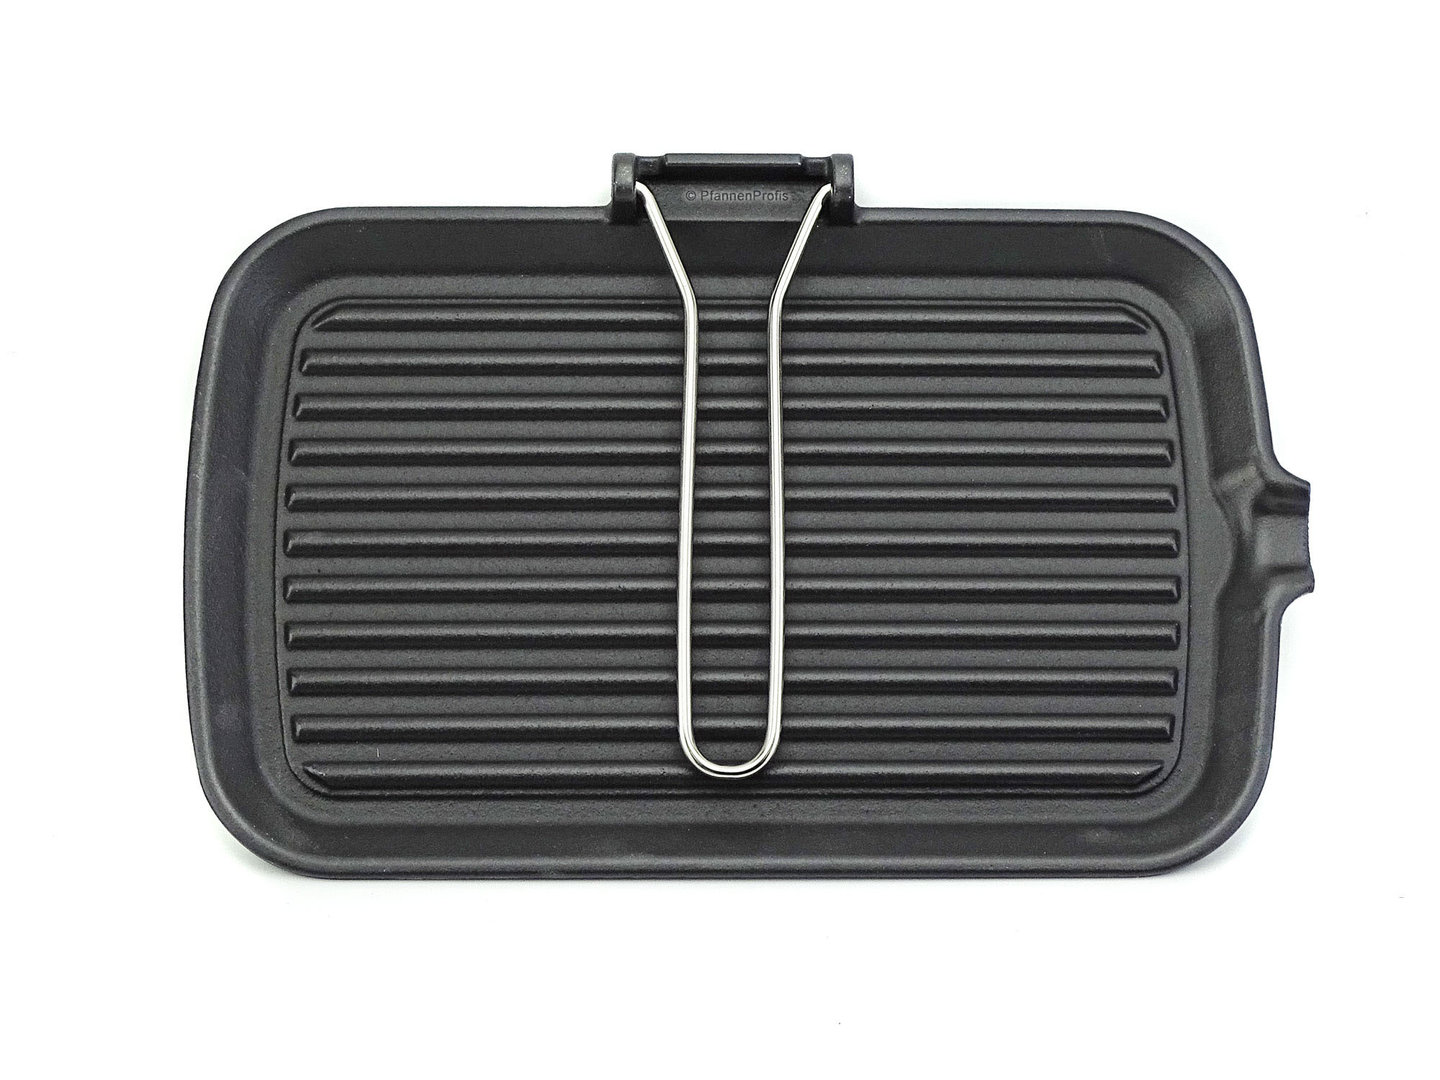 RISOLI cast iron grillpan 35 cm with foldaway handle